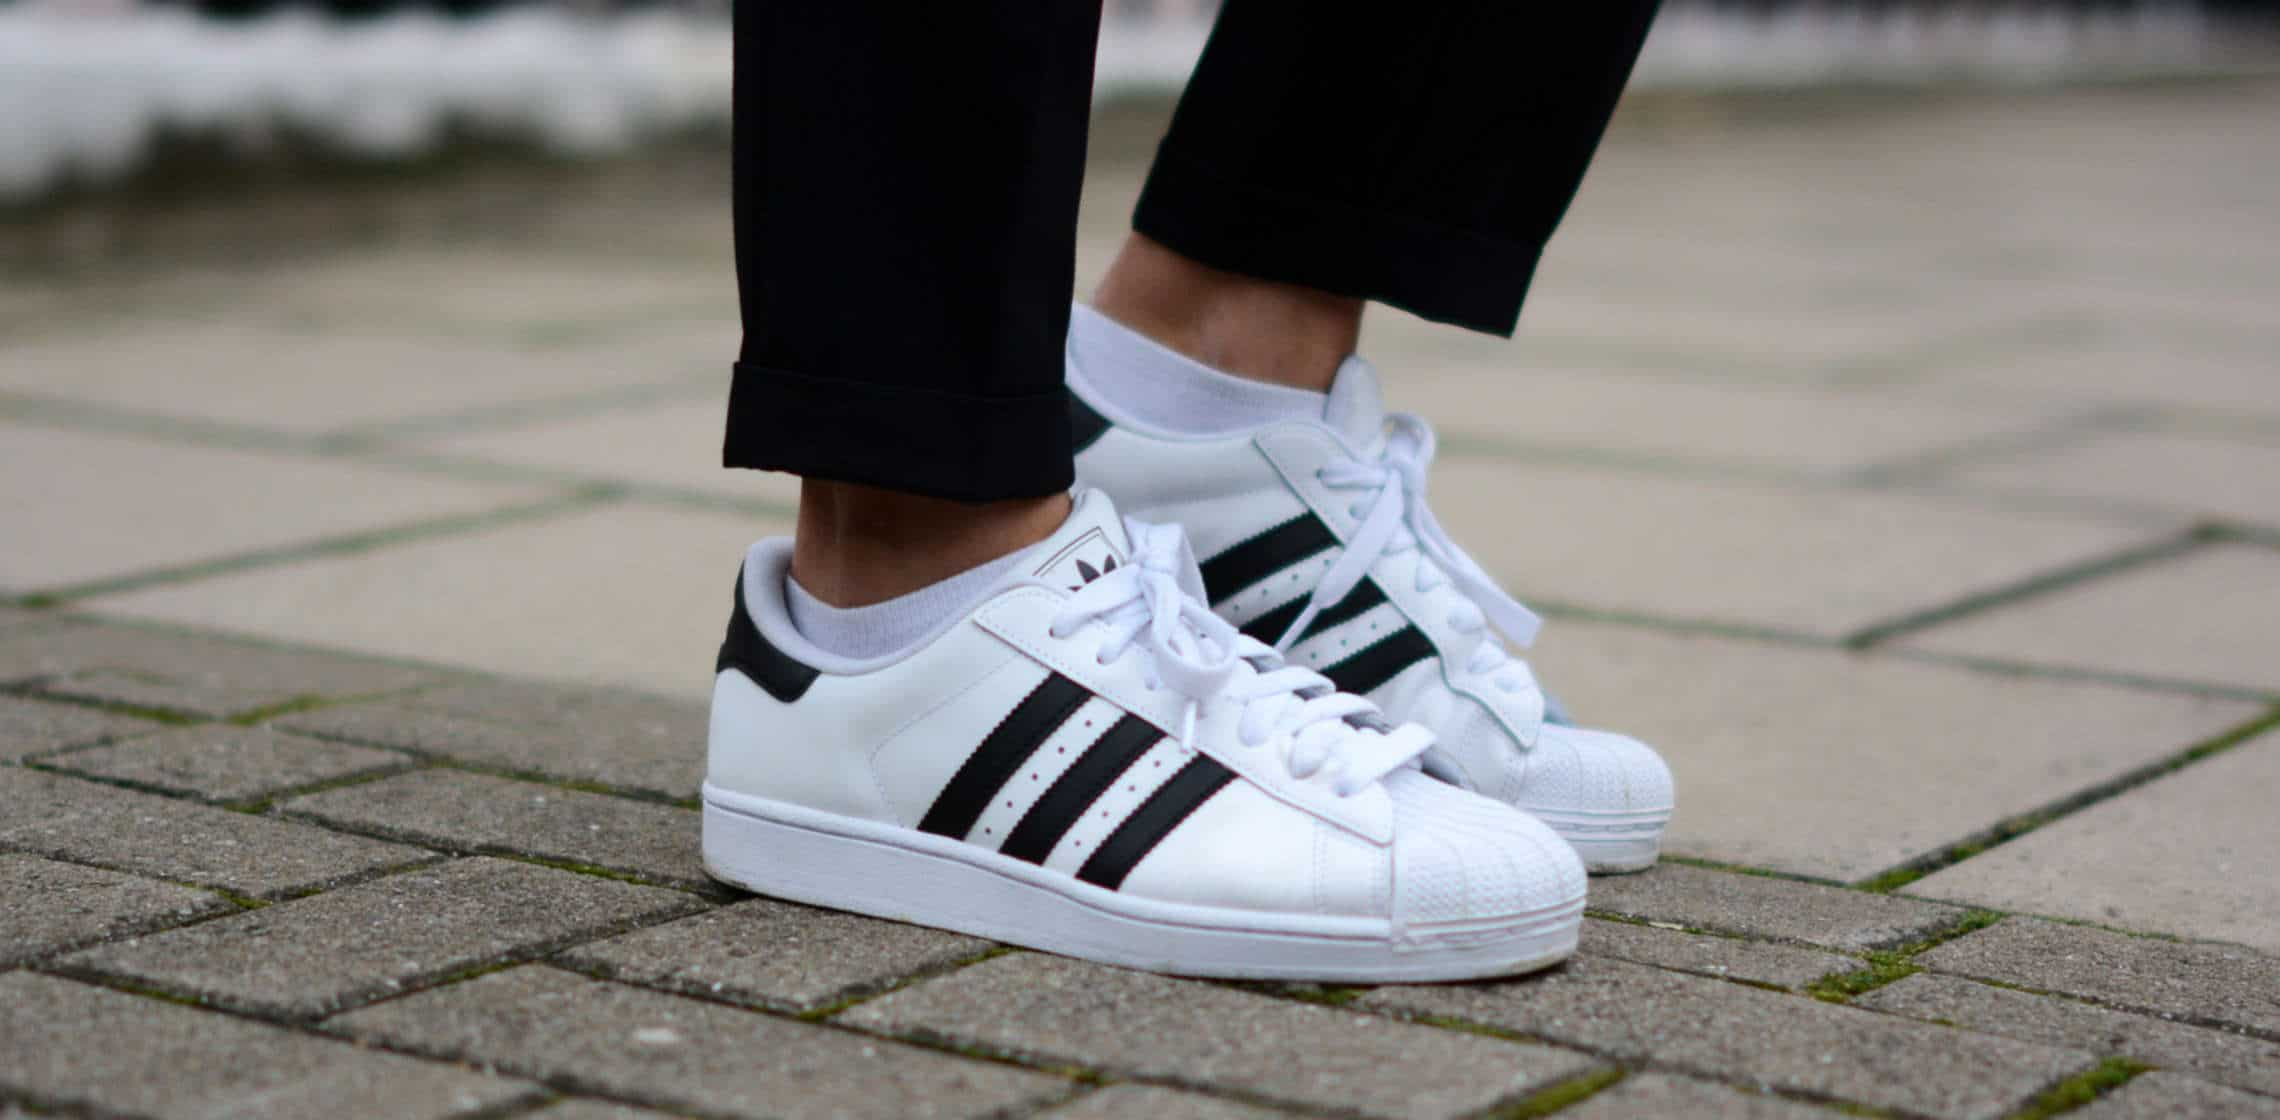 adidas superstar blancas aliexpress